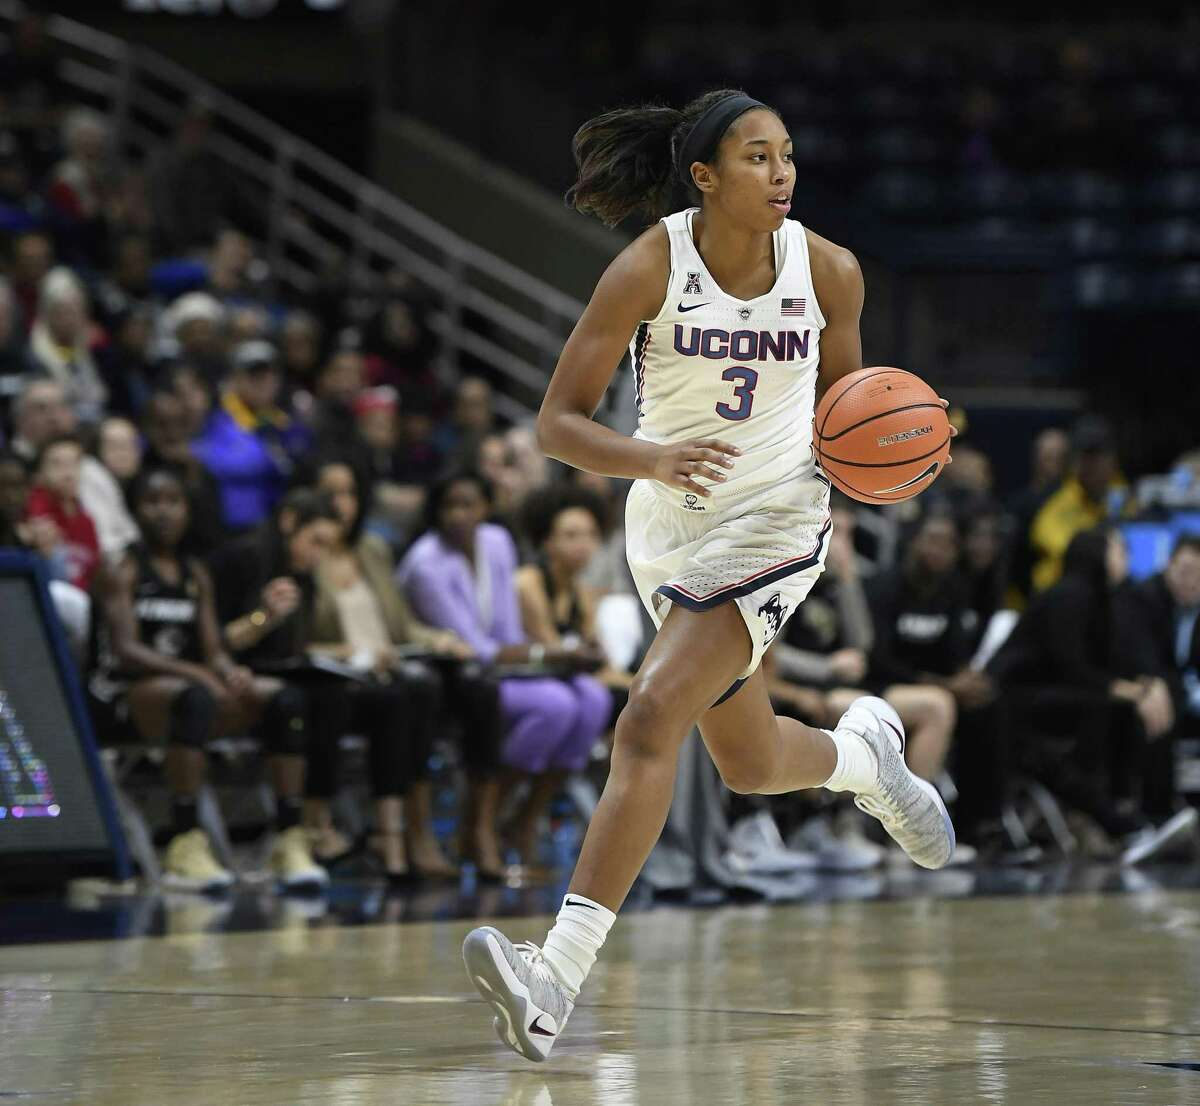 UConn sophomore Megan Walker. (AP Photo/Jessica Hill)